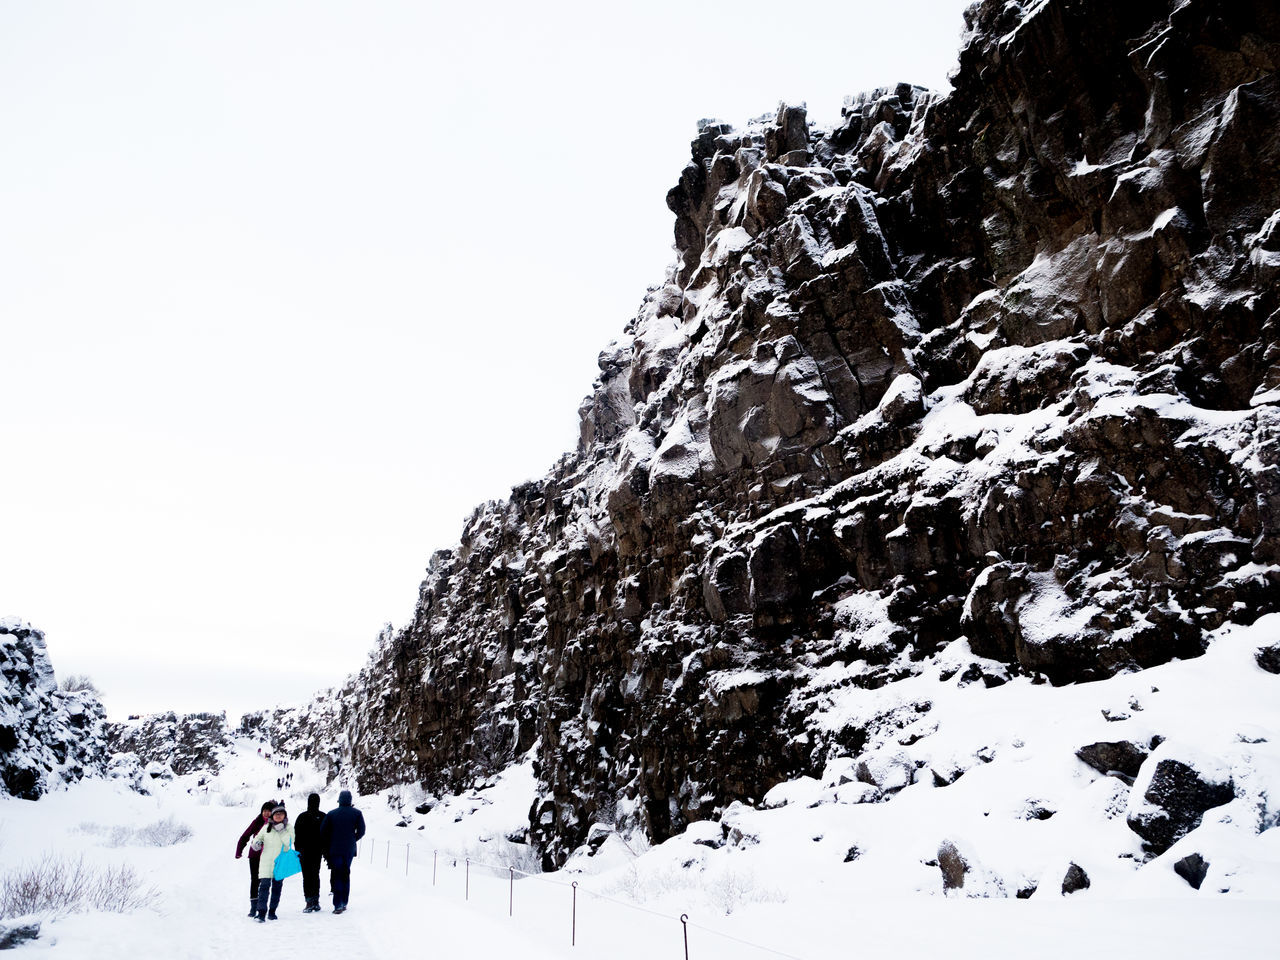 Beauty In Nature Cliff Cold Temperature Covering Day Full Length Iceland Landscape Leisure Activity Mountain Nature Non-urban Scene Outdoors Scenics Season  Snow Snow Covered Tourism Tranquil Scene Tranquility Weather Winter